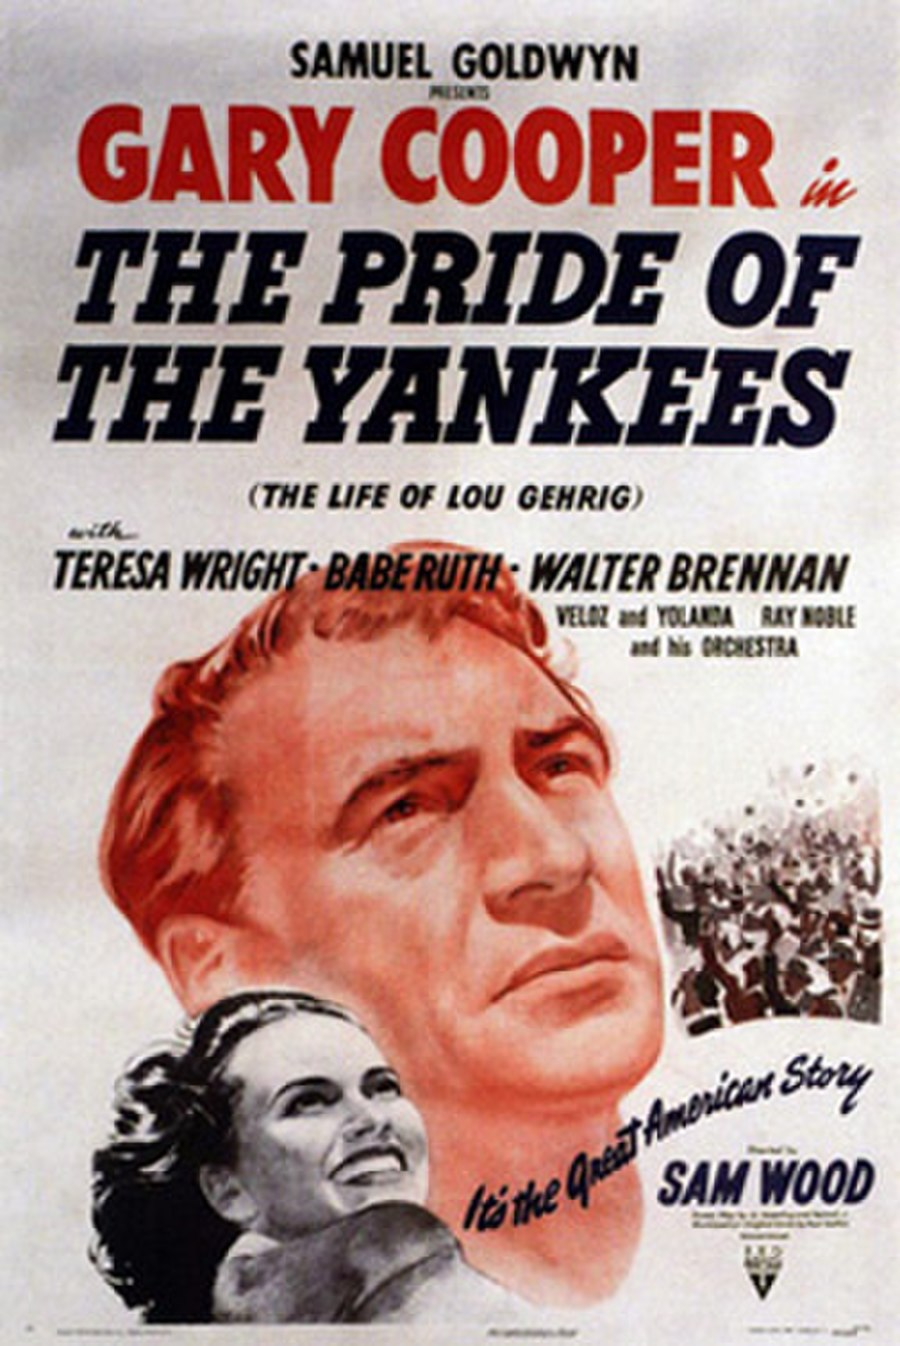 The Pride of the Yankees: The Life of Lou Gehrig